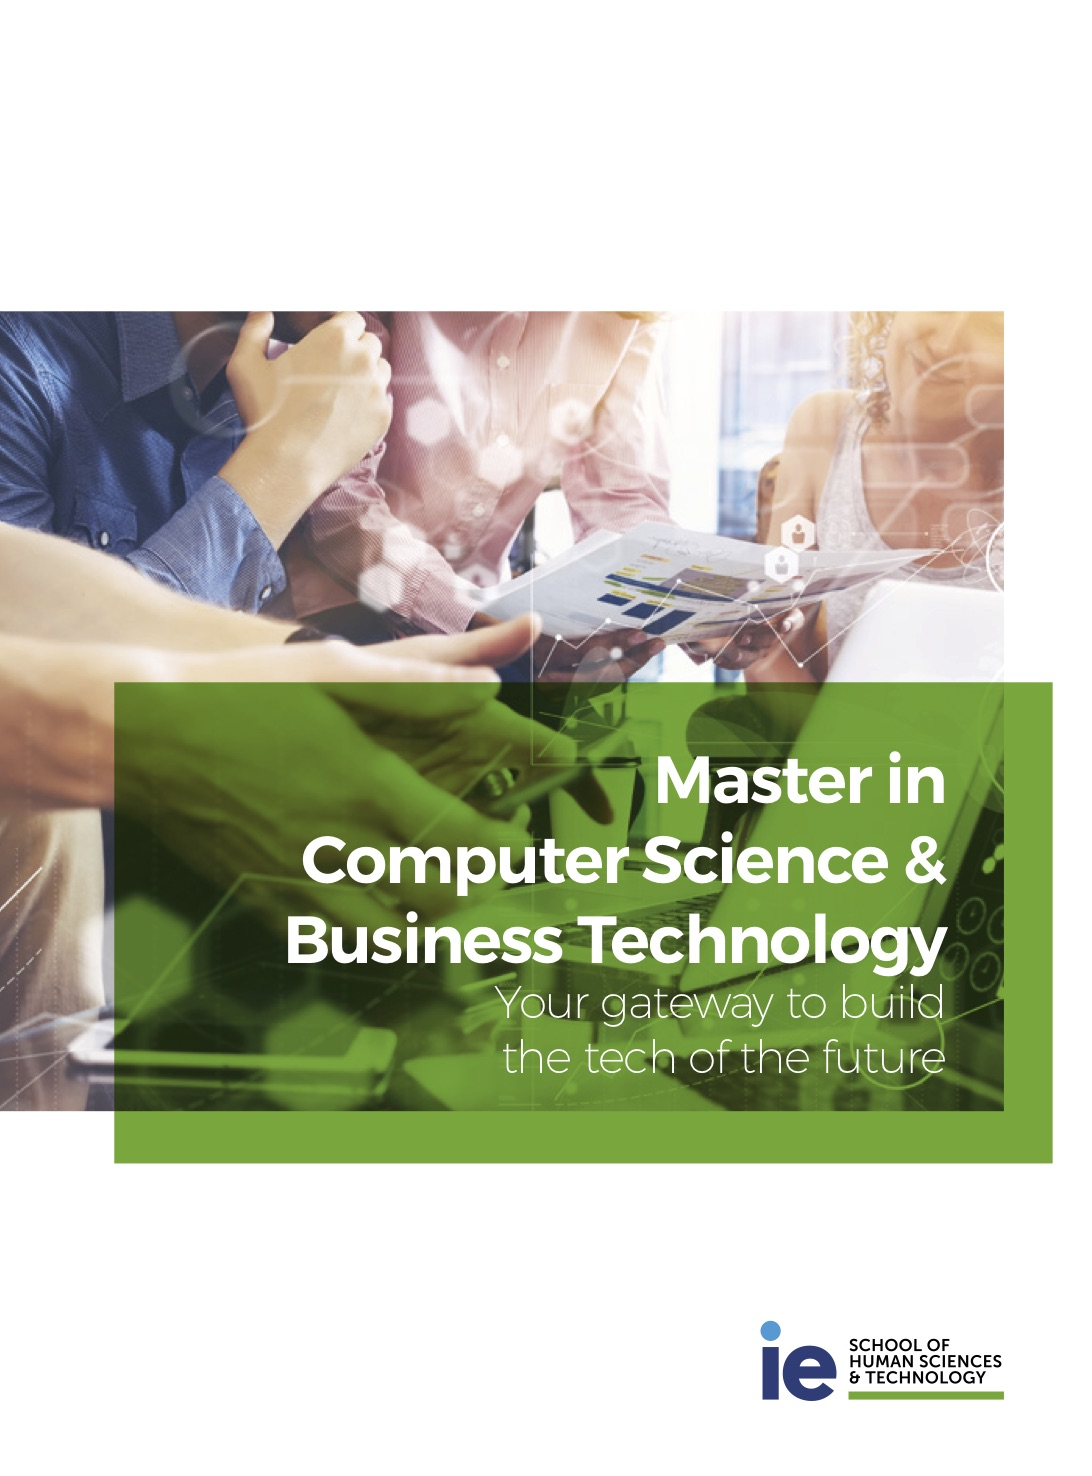 Computer Science & Business Technology